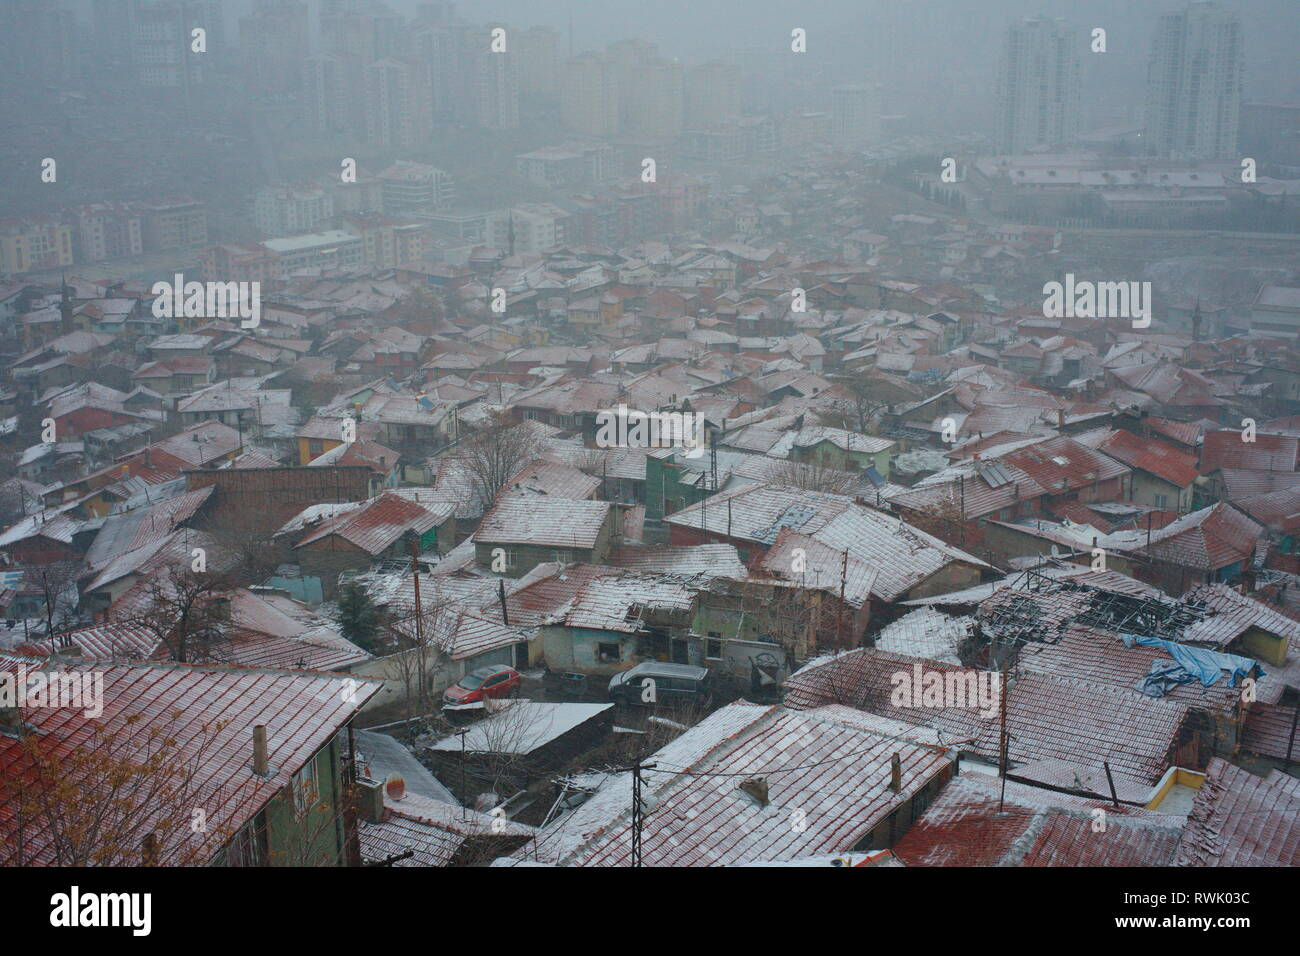 View of the city in winter. snow covered the entire city center. snowfall continues. urban buildings and city center. aerial view of the city. Ankara  Stock Photo